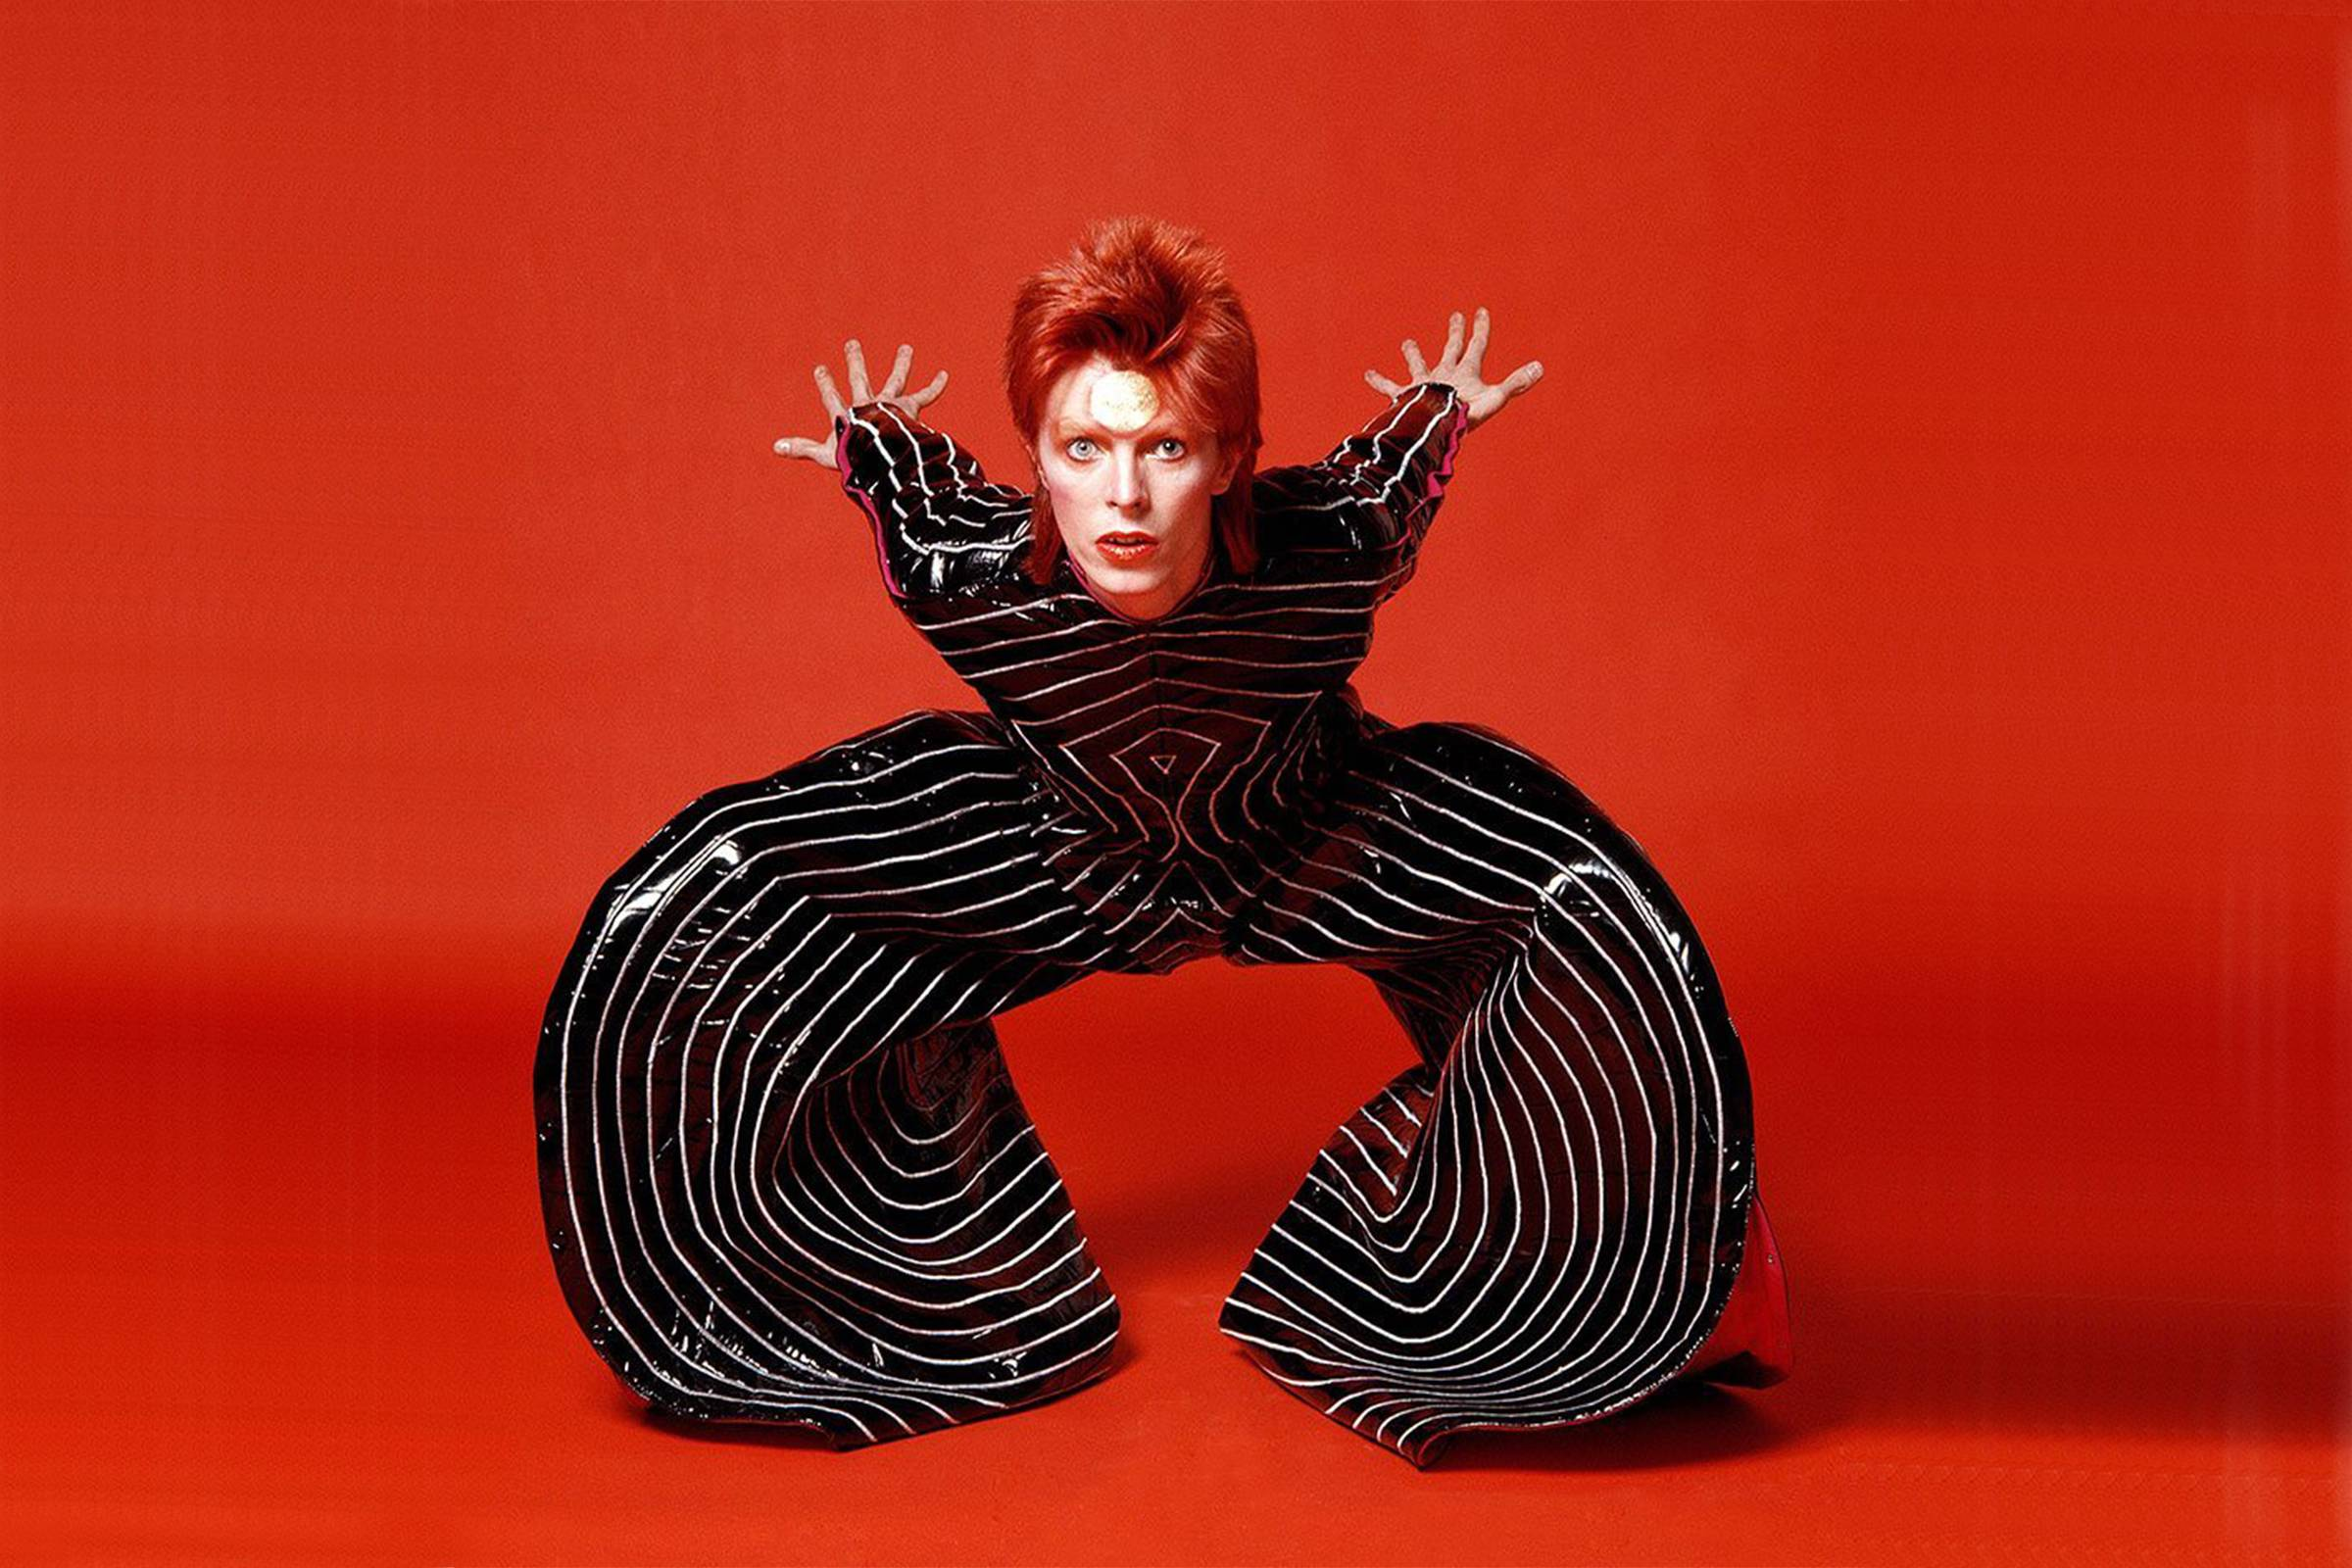 David Bowie as Ziggy Stardust in a striped baloon jumpsuit by Kansai Yamamoto